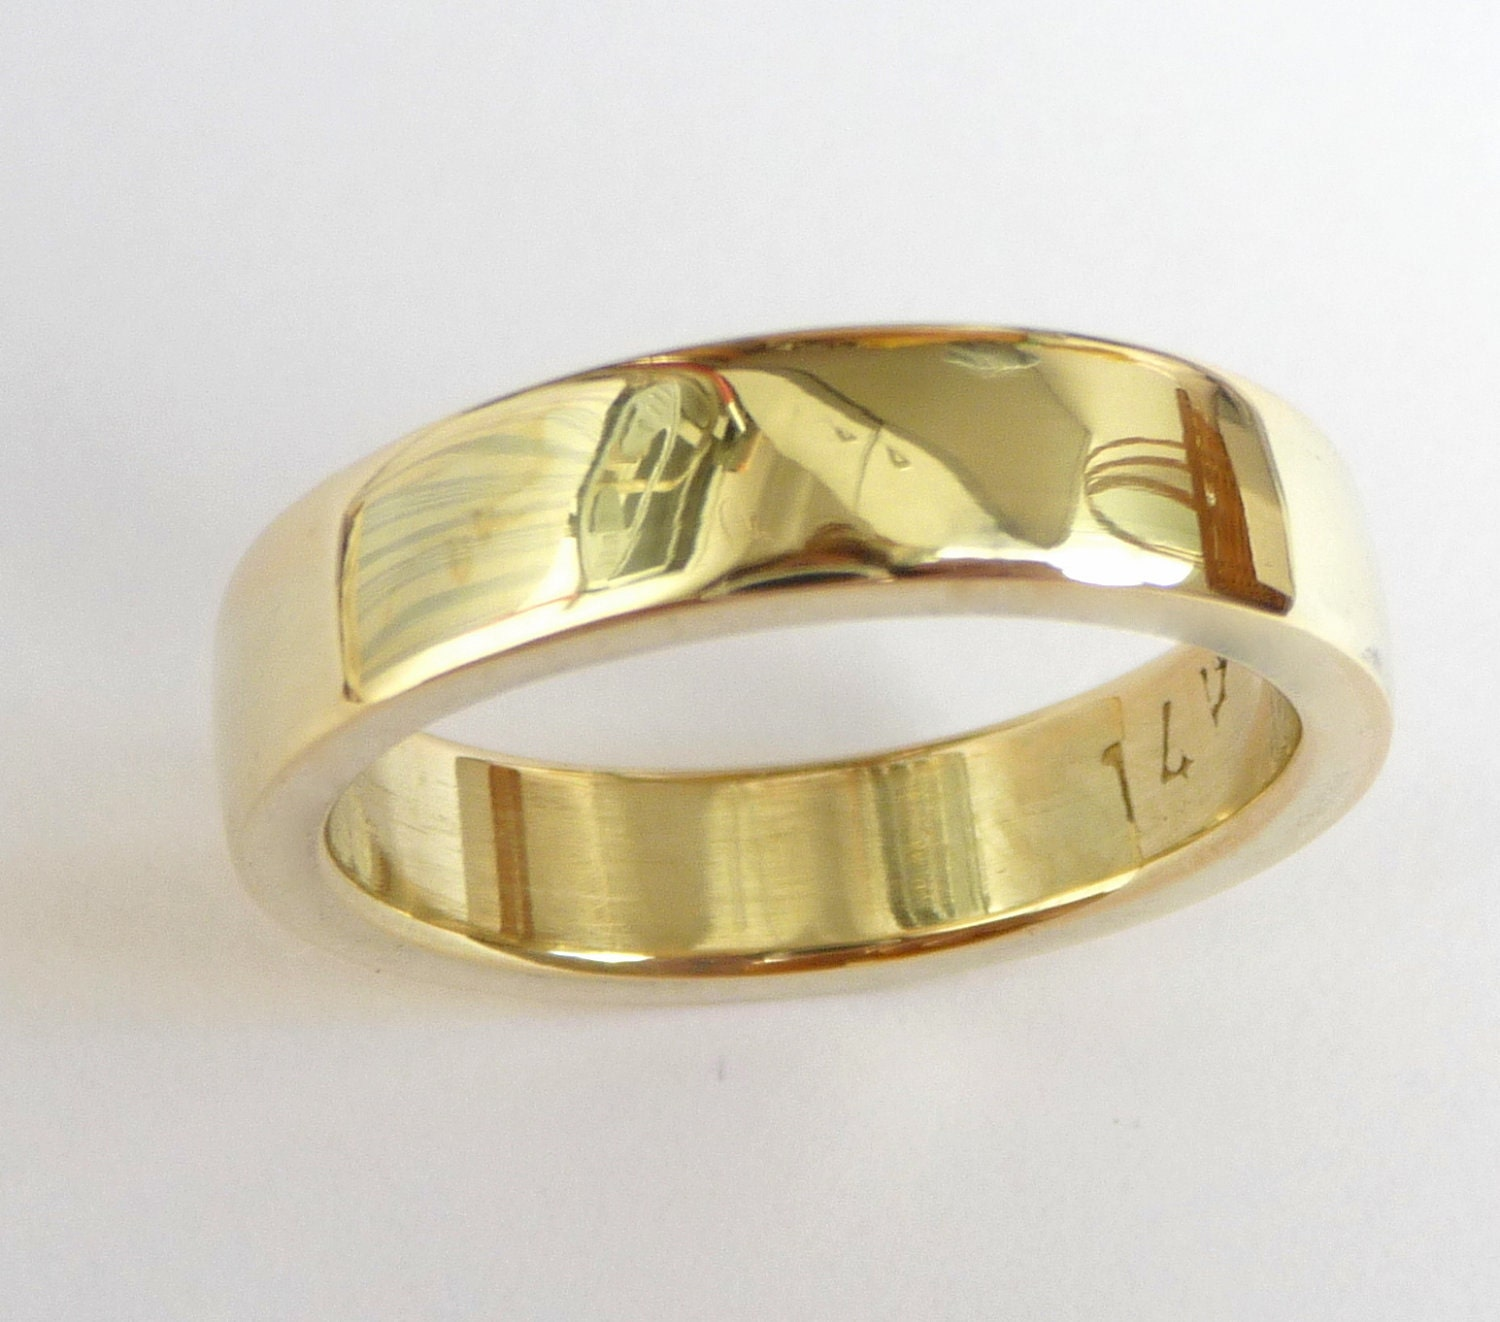 wedding rings for men wedding rings men Mens Wedding Band Men 39 S Gold Ring Men Wedding Ring Thick